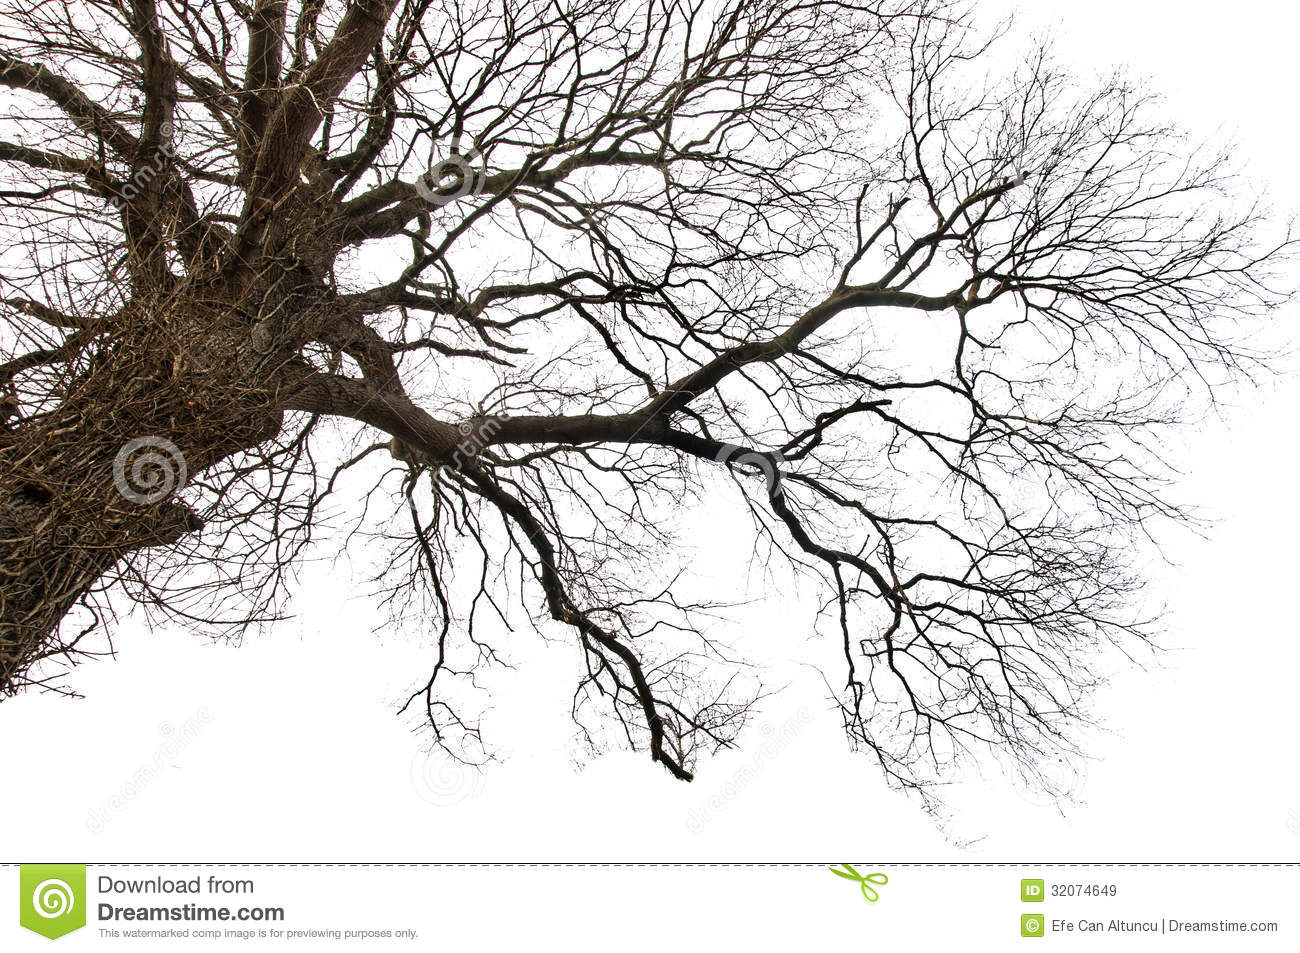 Arbre mort d isolement